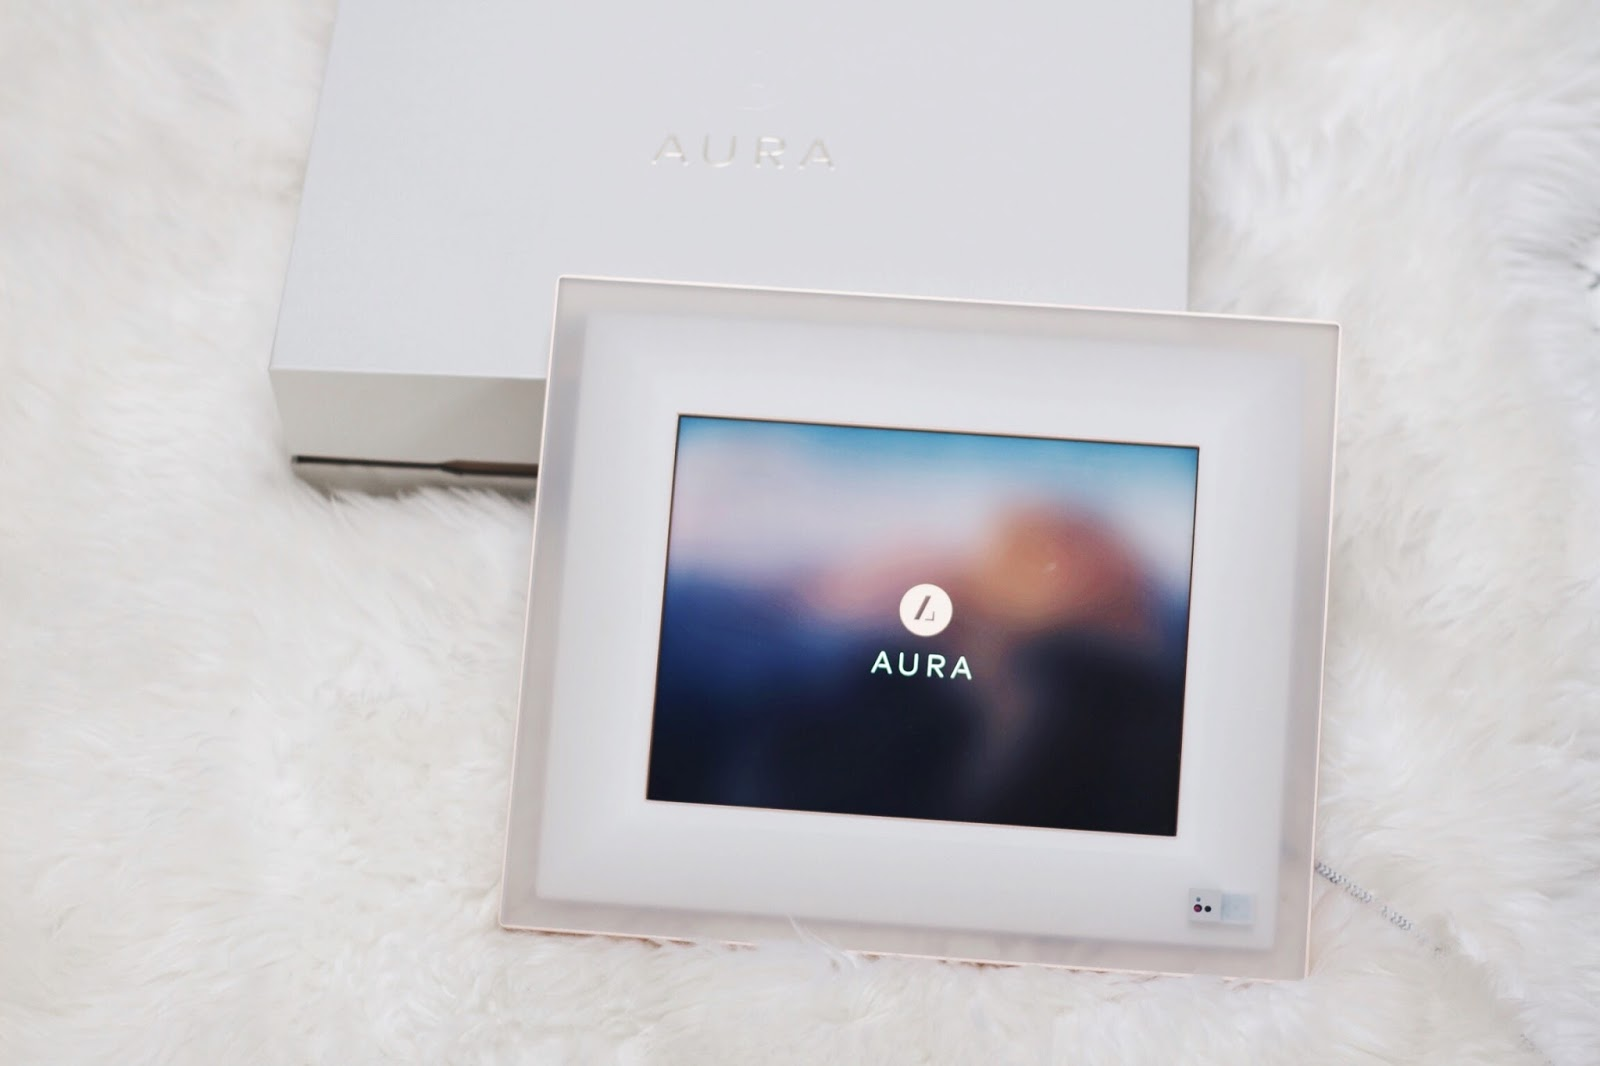 Aura Frames - The Next Generation Digital Frame